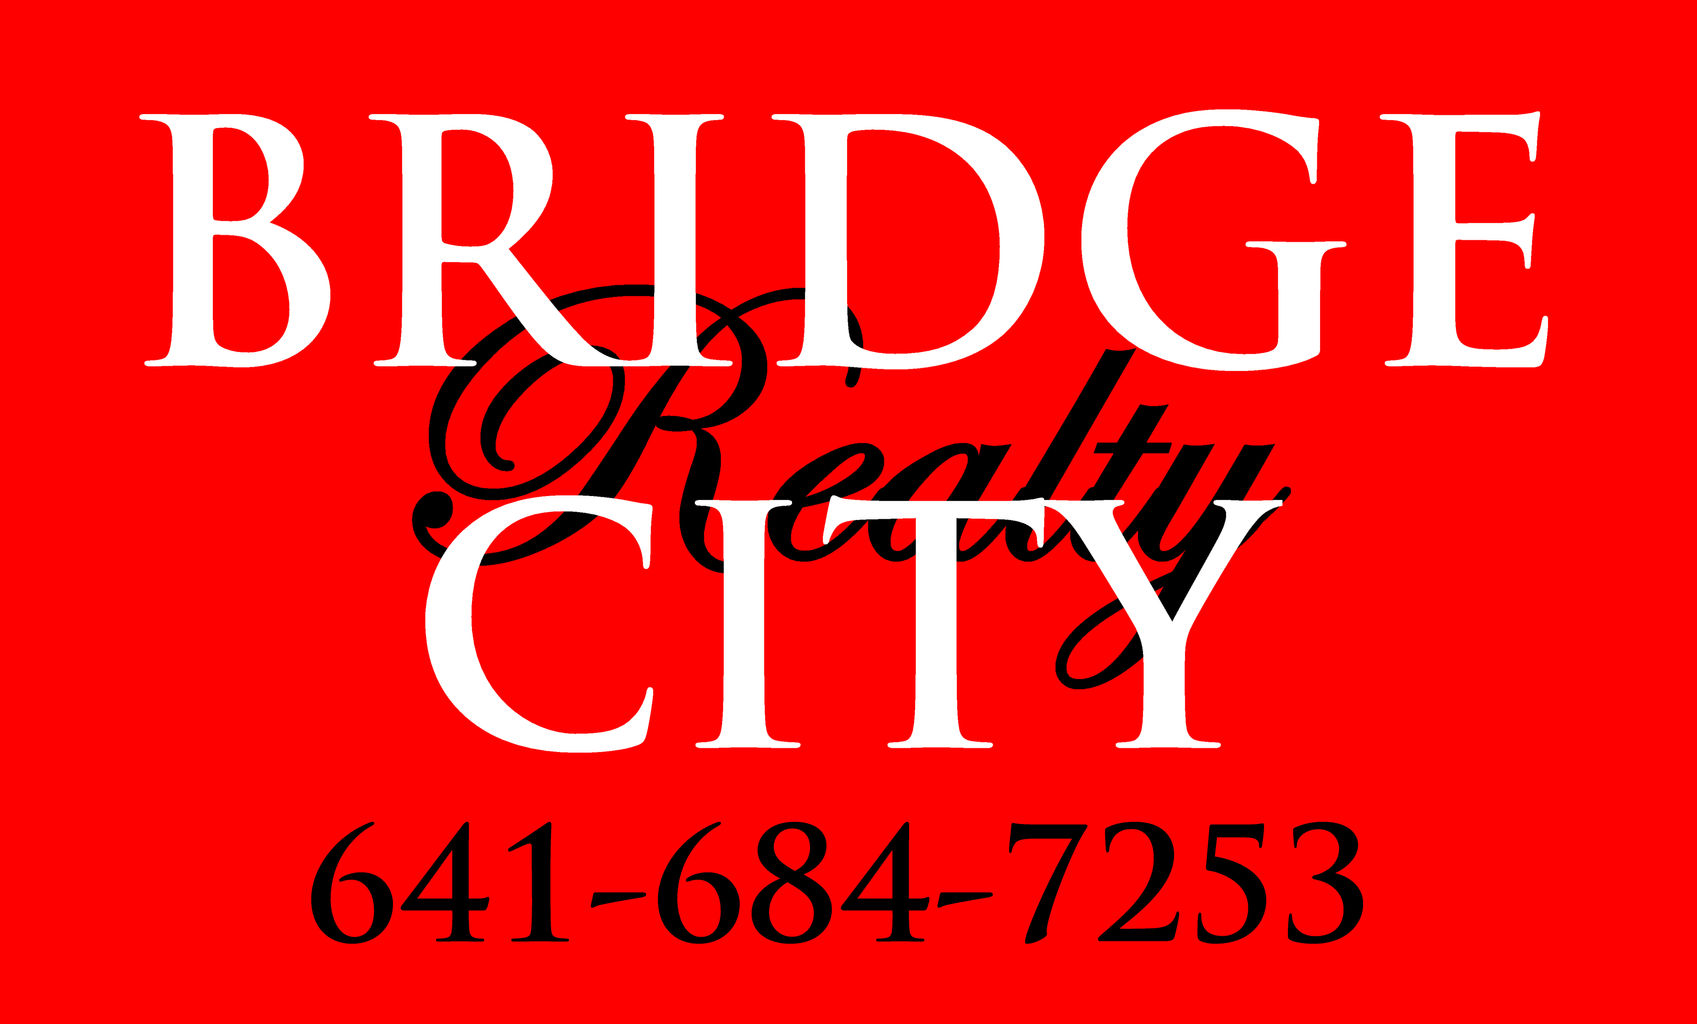 Bridge City Realty Inc.